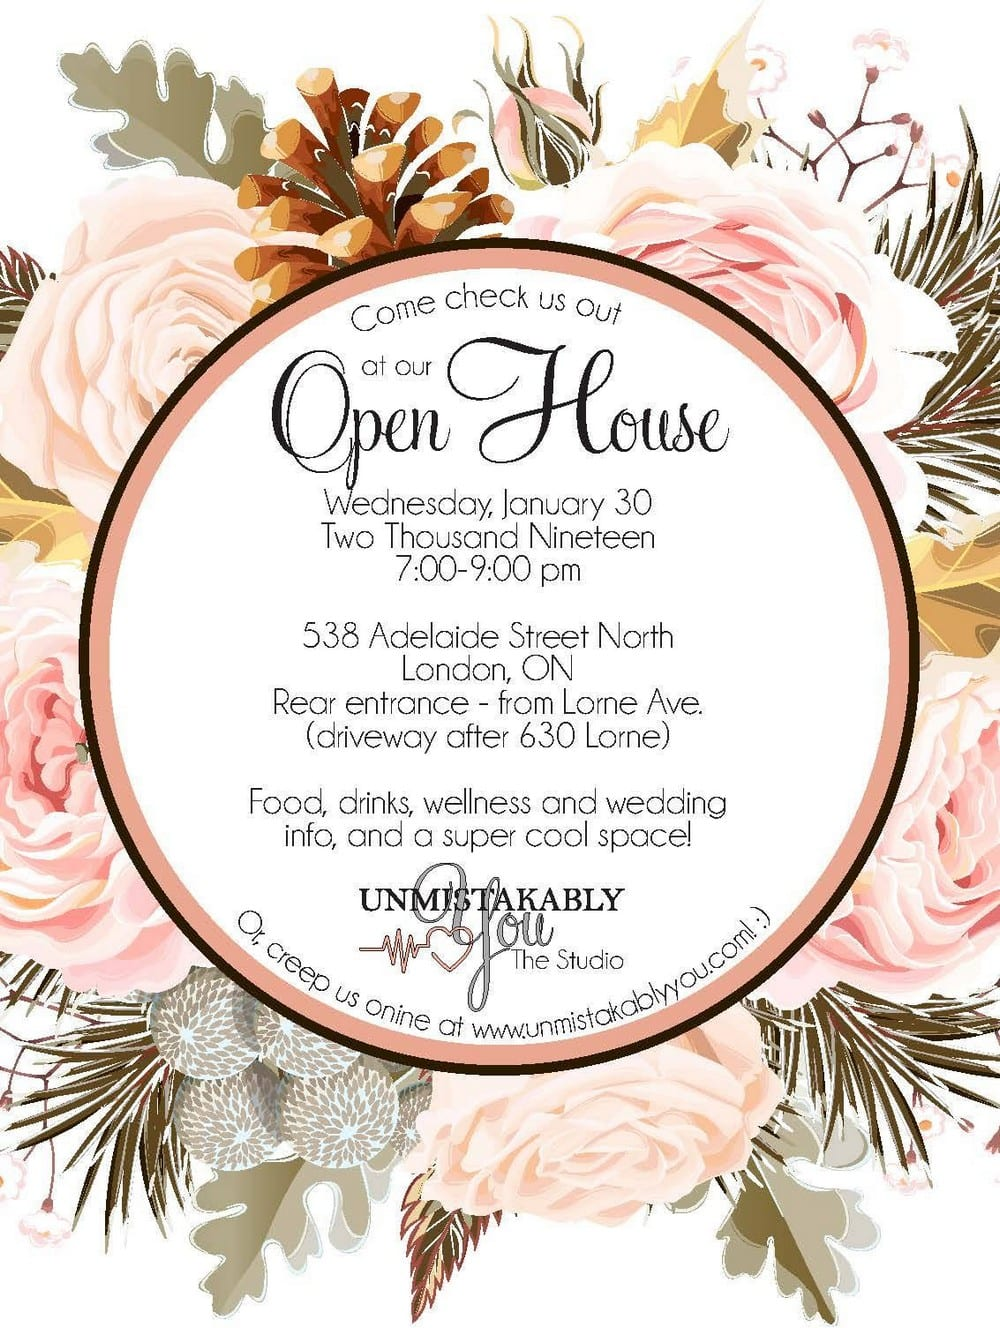 Unmistakably You Open House